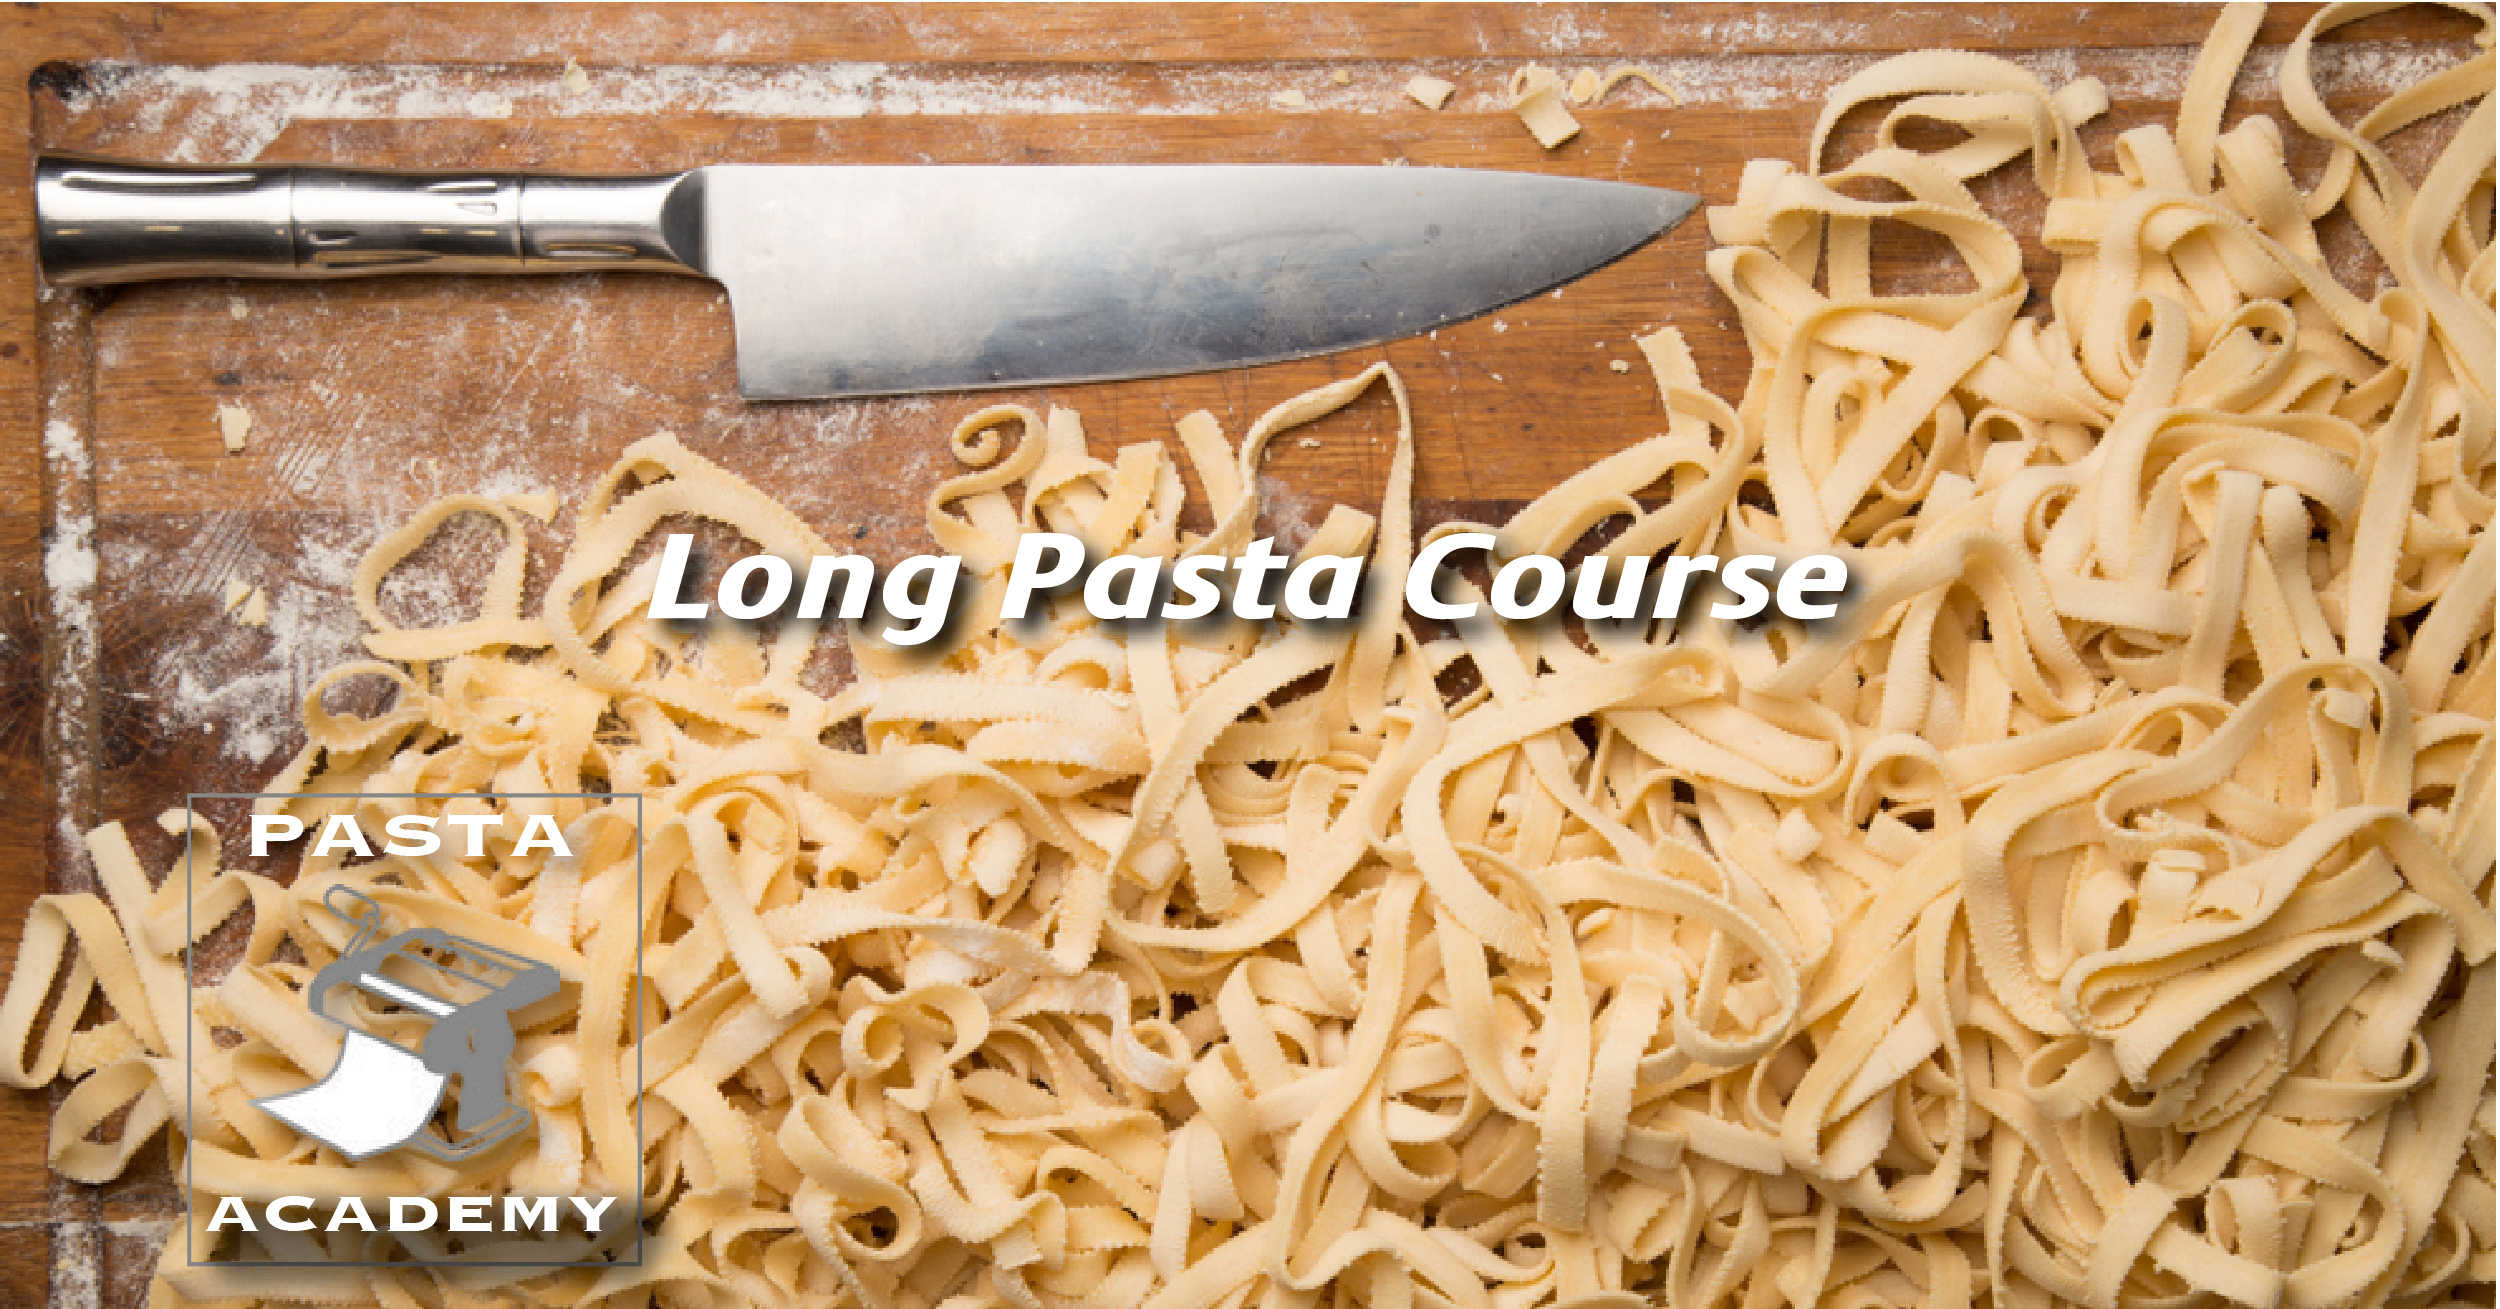 Consumer - Long Pasta Course   Learn the specifics of numerous types of pasta in the category, including spaghetti, bucatini, cappellini, linguini and other similar types. Students will explore the different types of sauces, additions and garnishes that the pastas are commonly paired with.